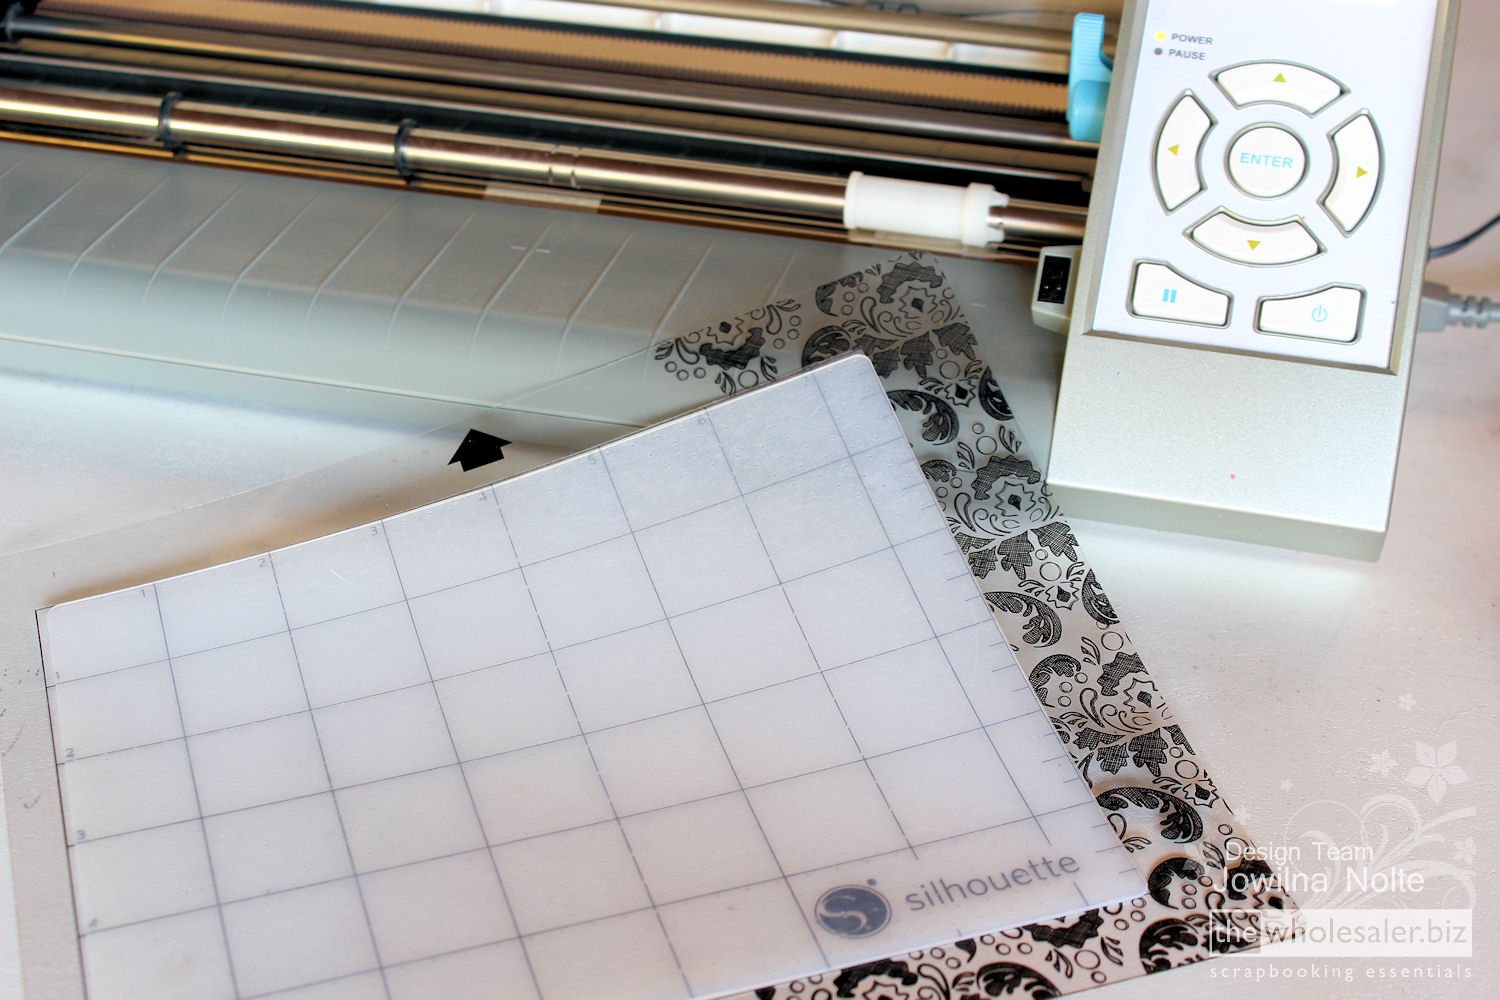 Silhouette Stamp Material - Step 3